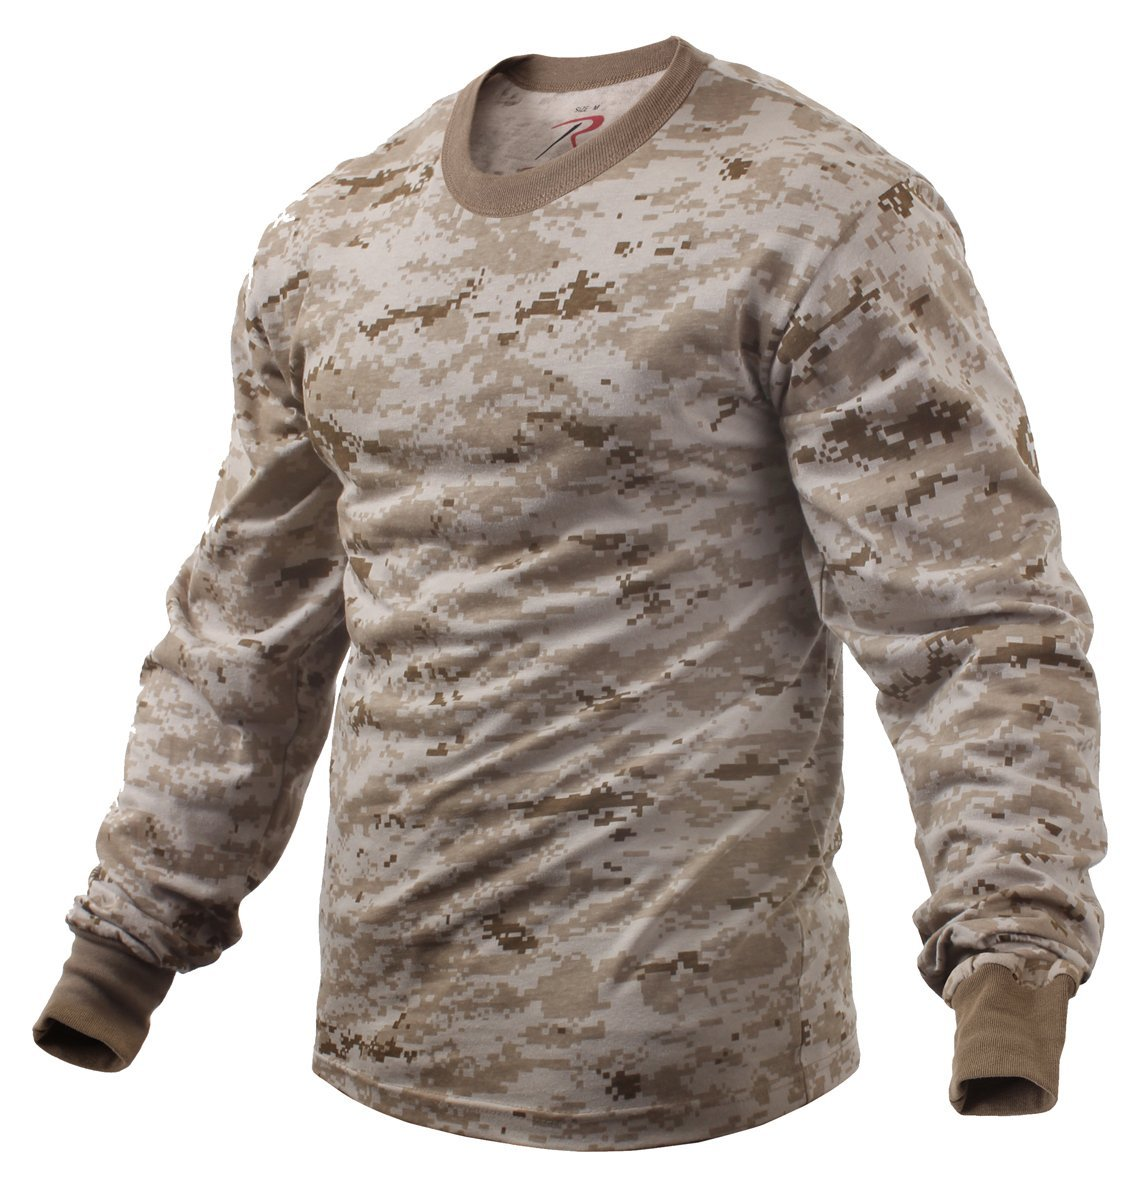 Rothco Long Sleeve Digital Camo T-Shirts - Desert Digital Camo, Large